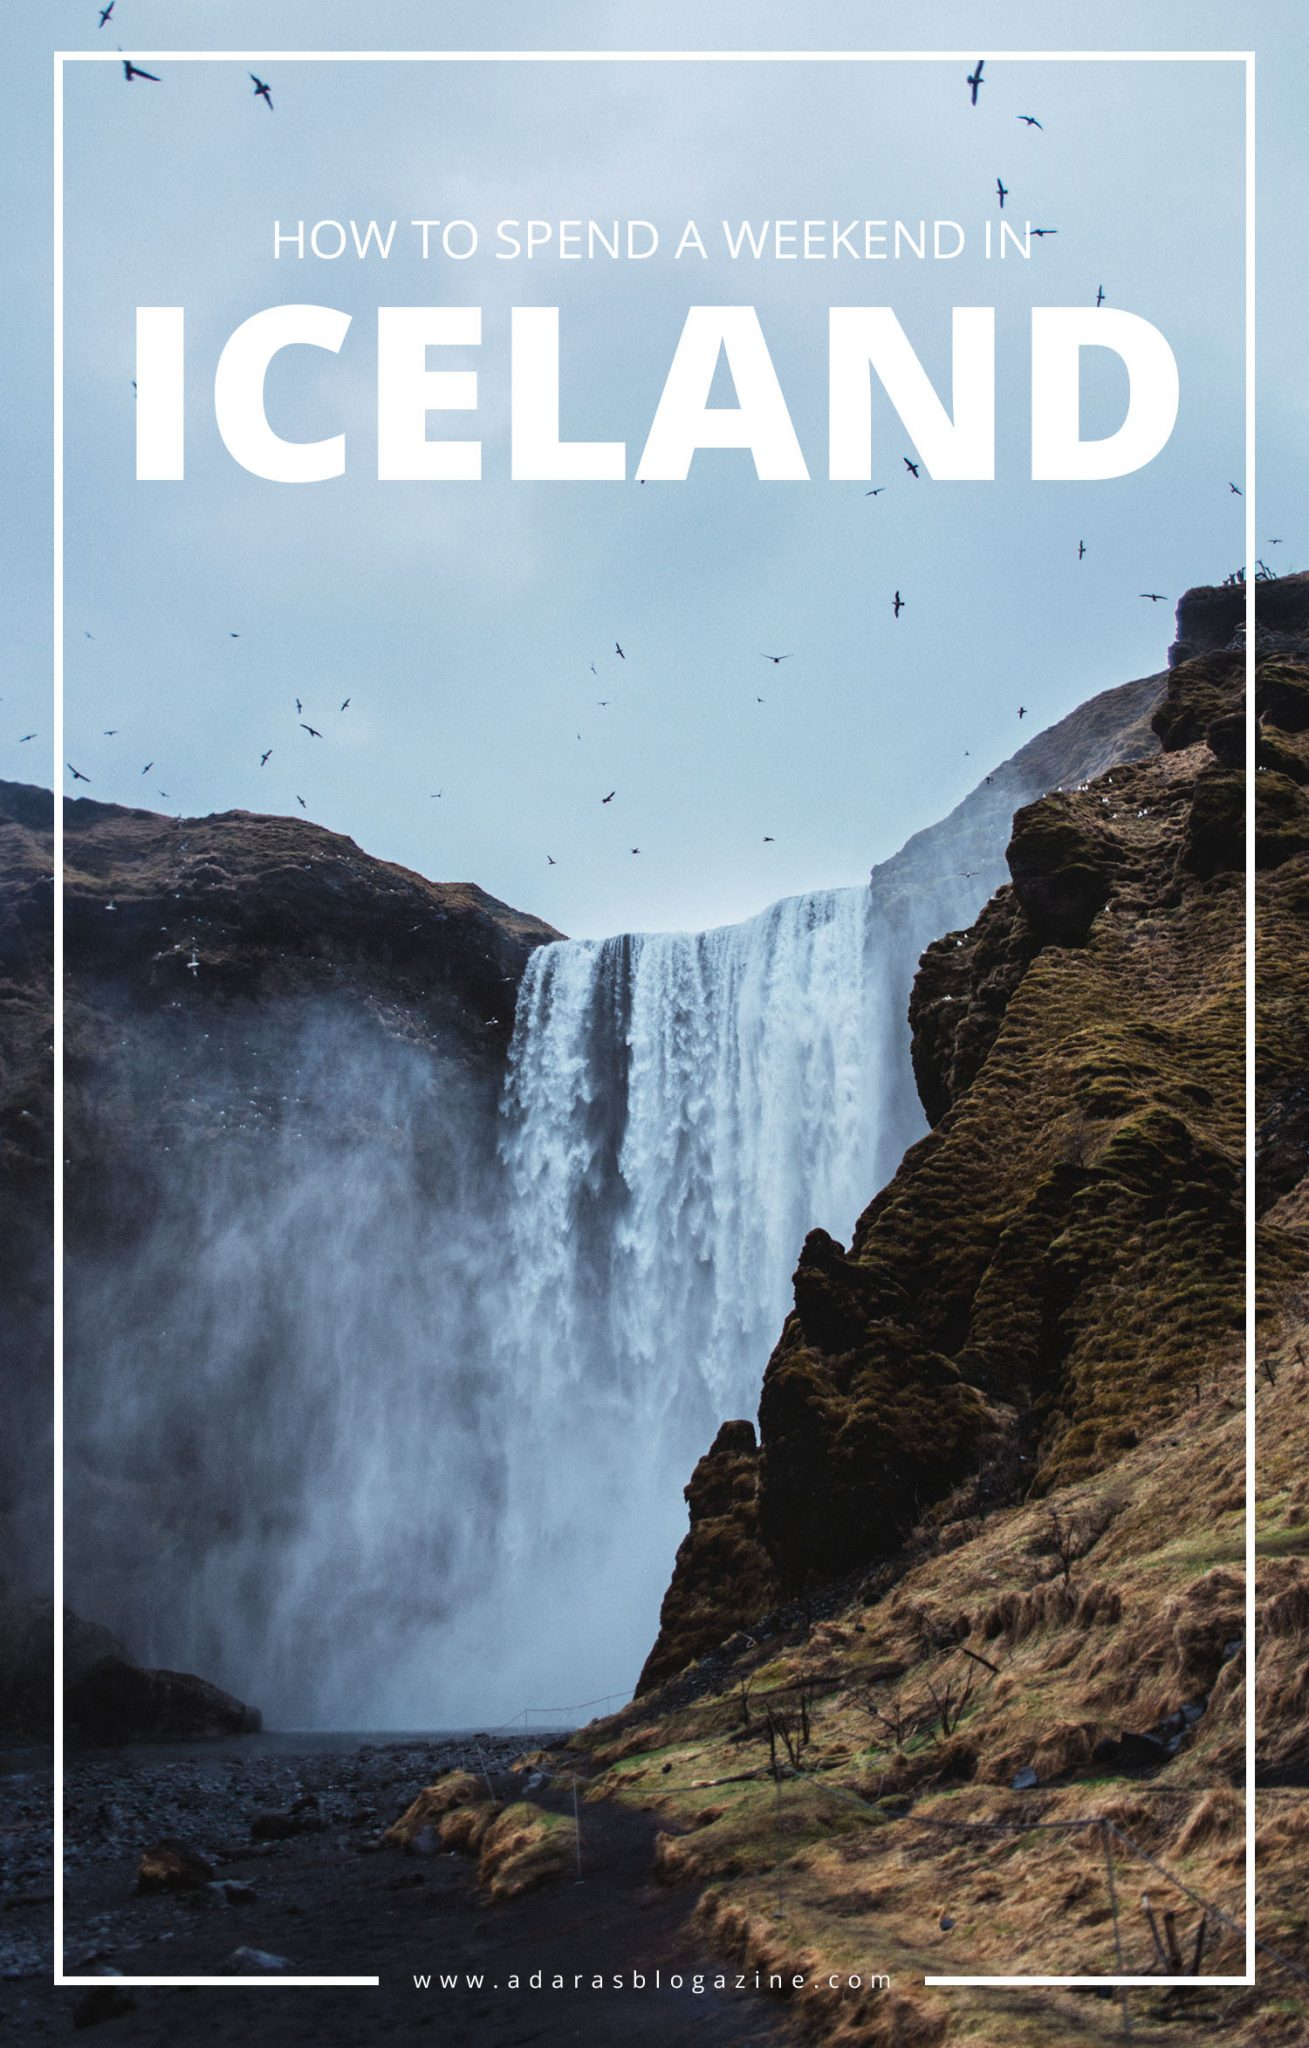 ADARAS Guide: How to spend a weekend in Iceland